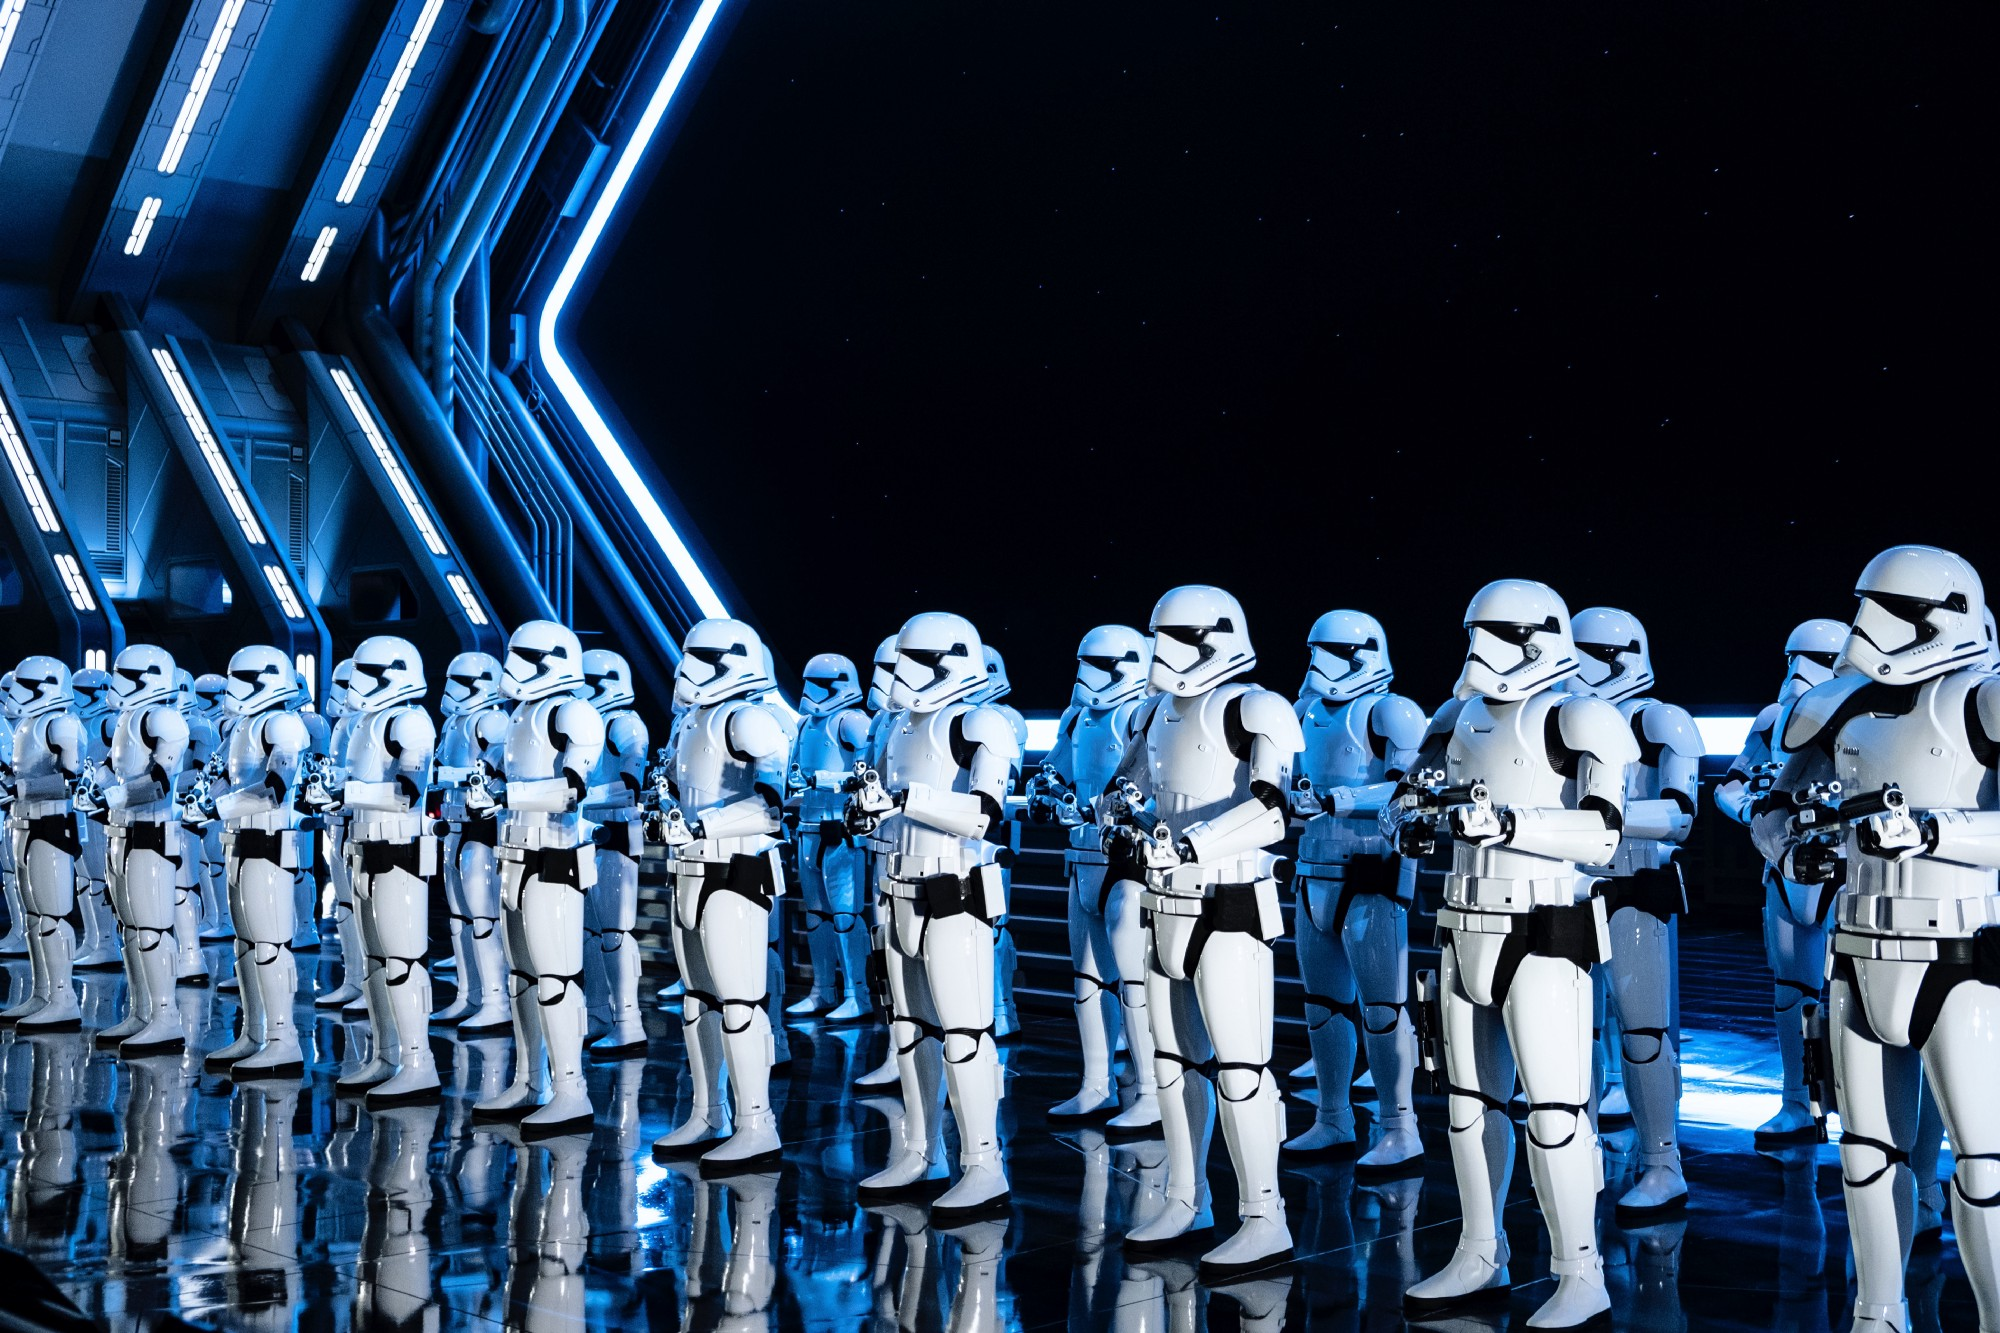 A platoon of stormtroopers from Star Wars.